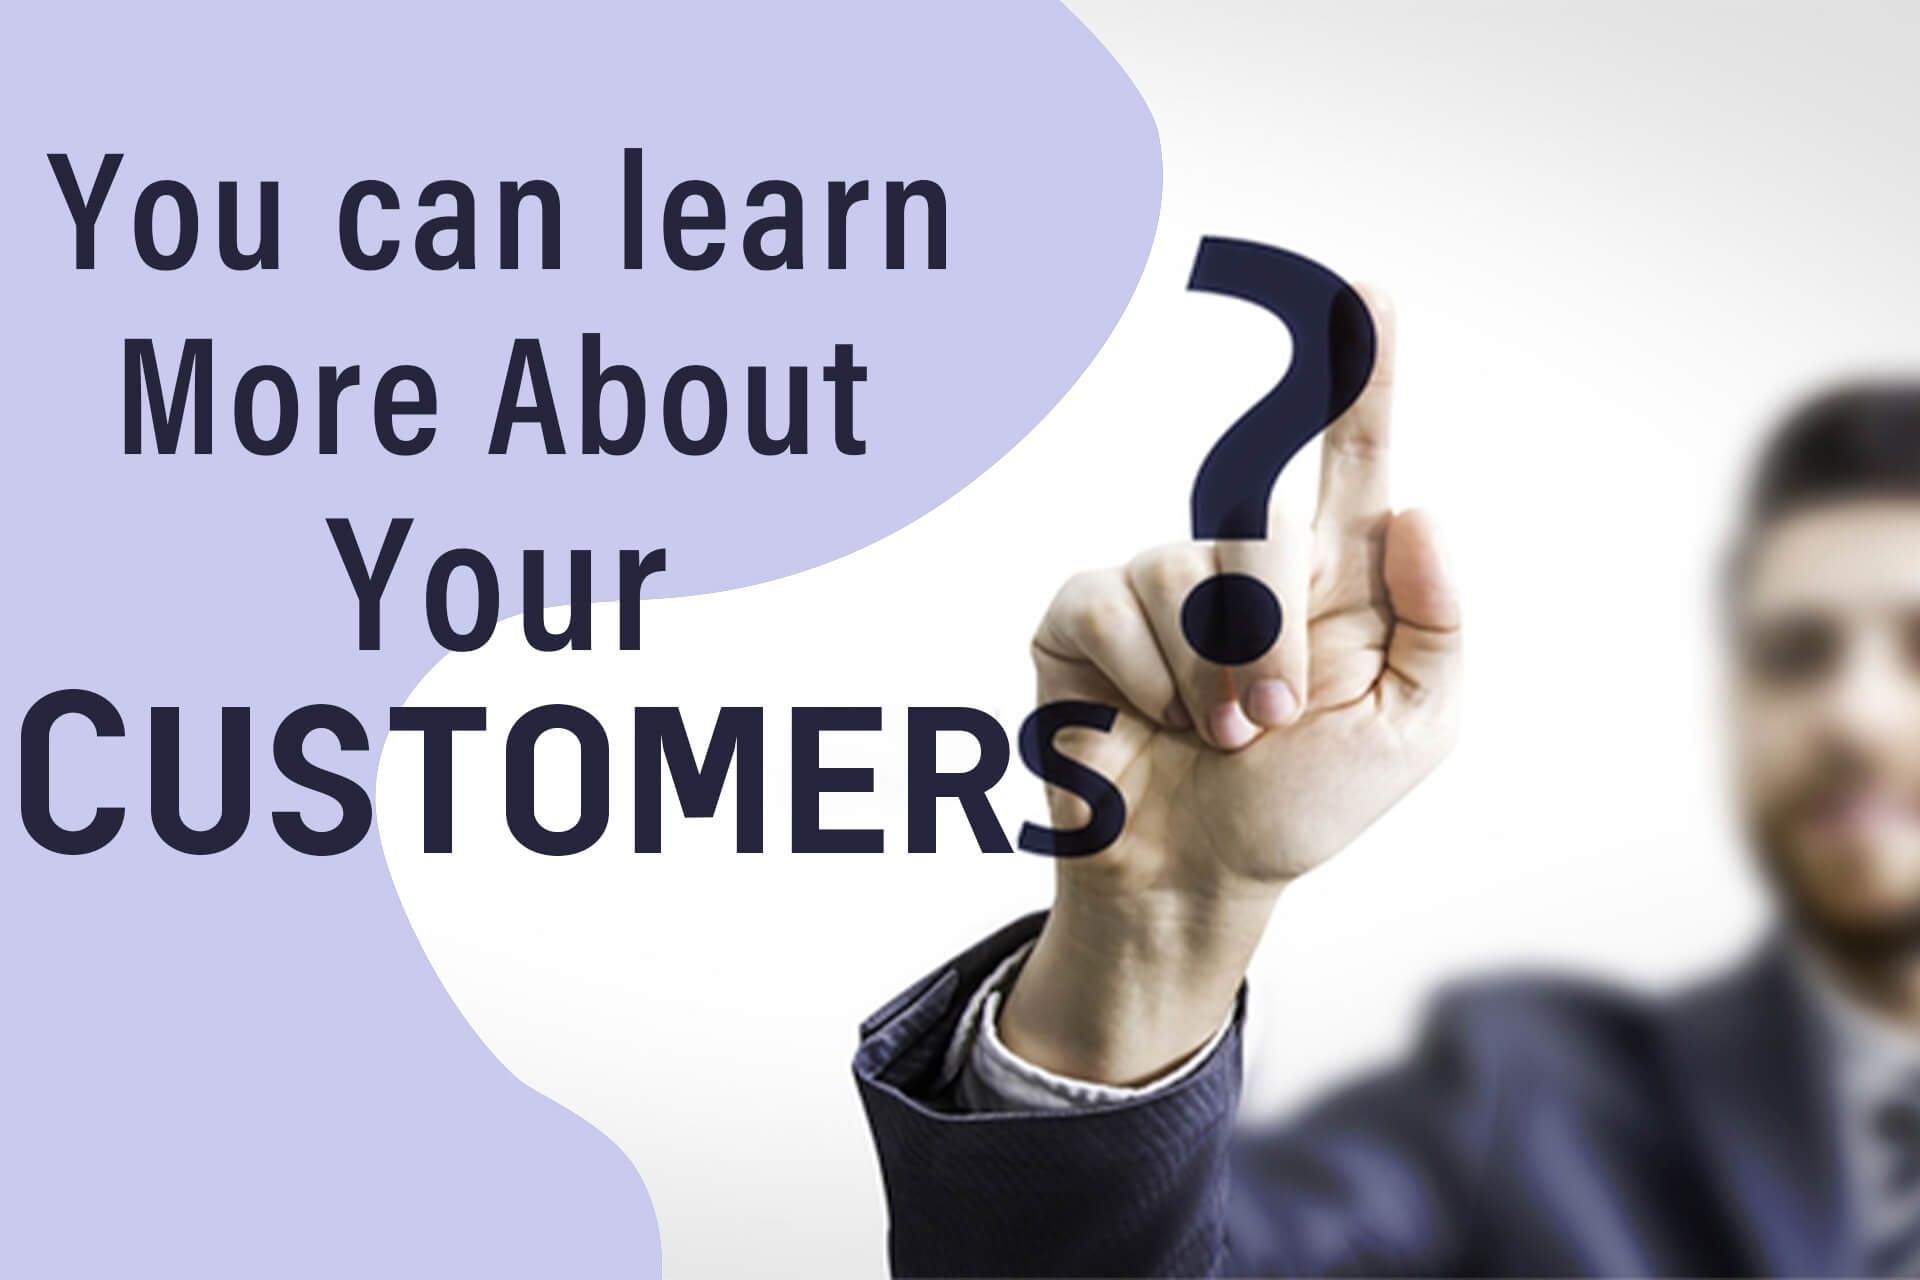 You can learn More About Your Customers.